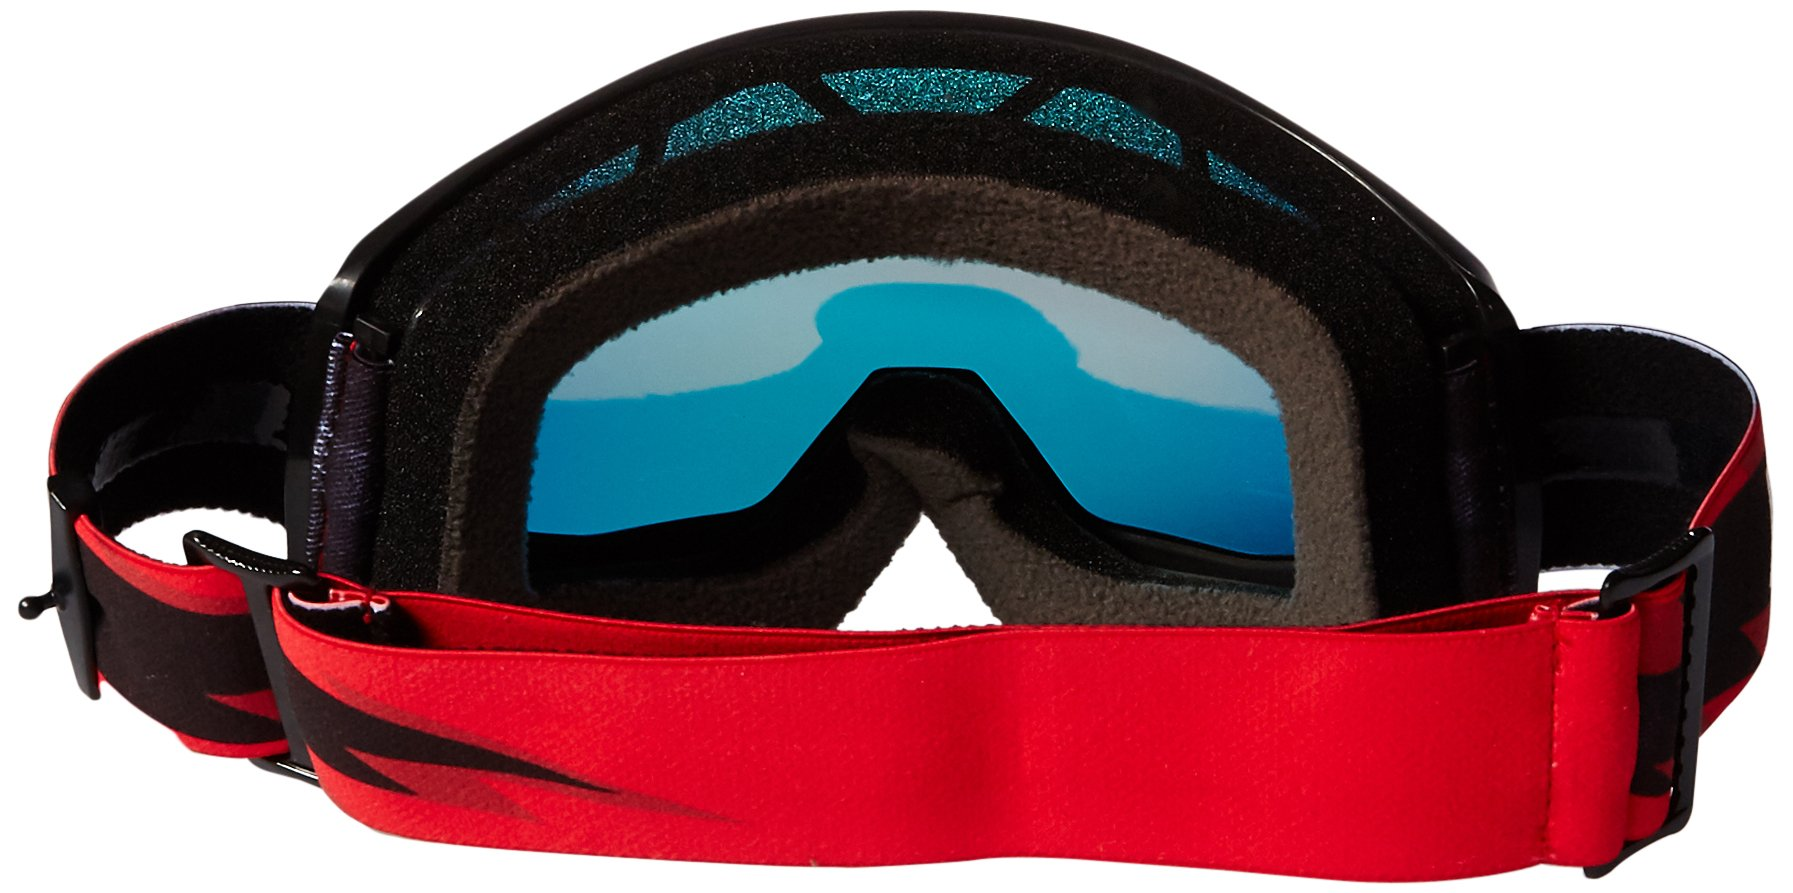 100% 50410-076-02 unisex-adult Goggle (Black,Mirror Red,One Size) (STRATA MX STRATA SLSH Mirror Lens Red)